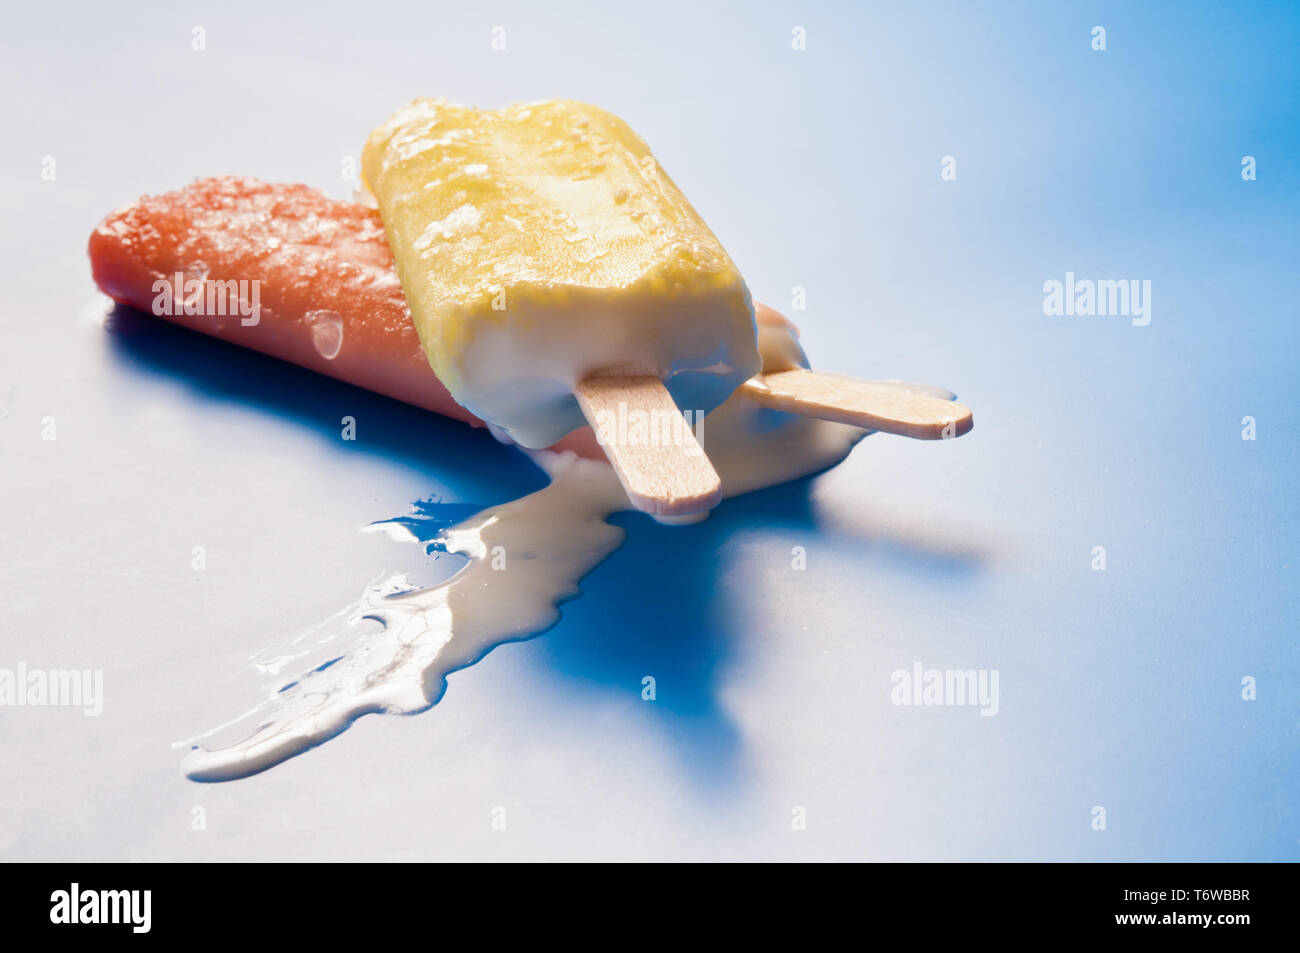 two ice lollies or ice pops melting - Stock Image